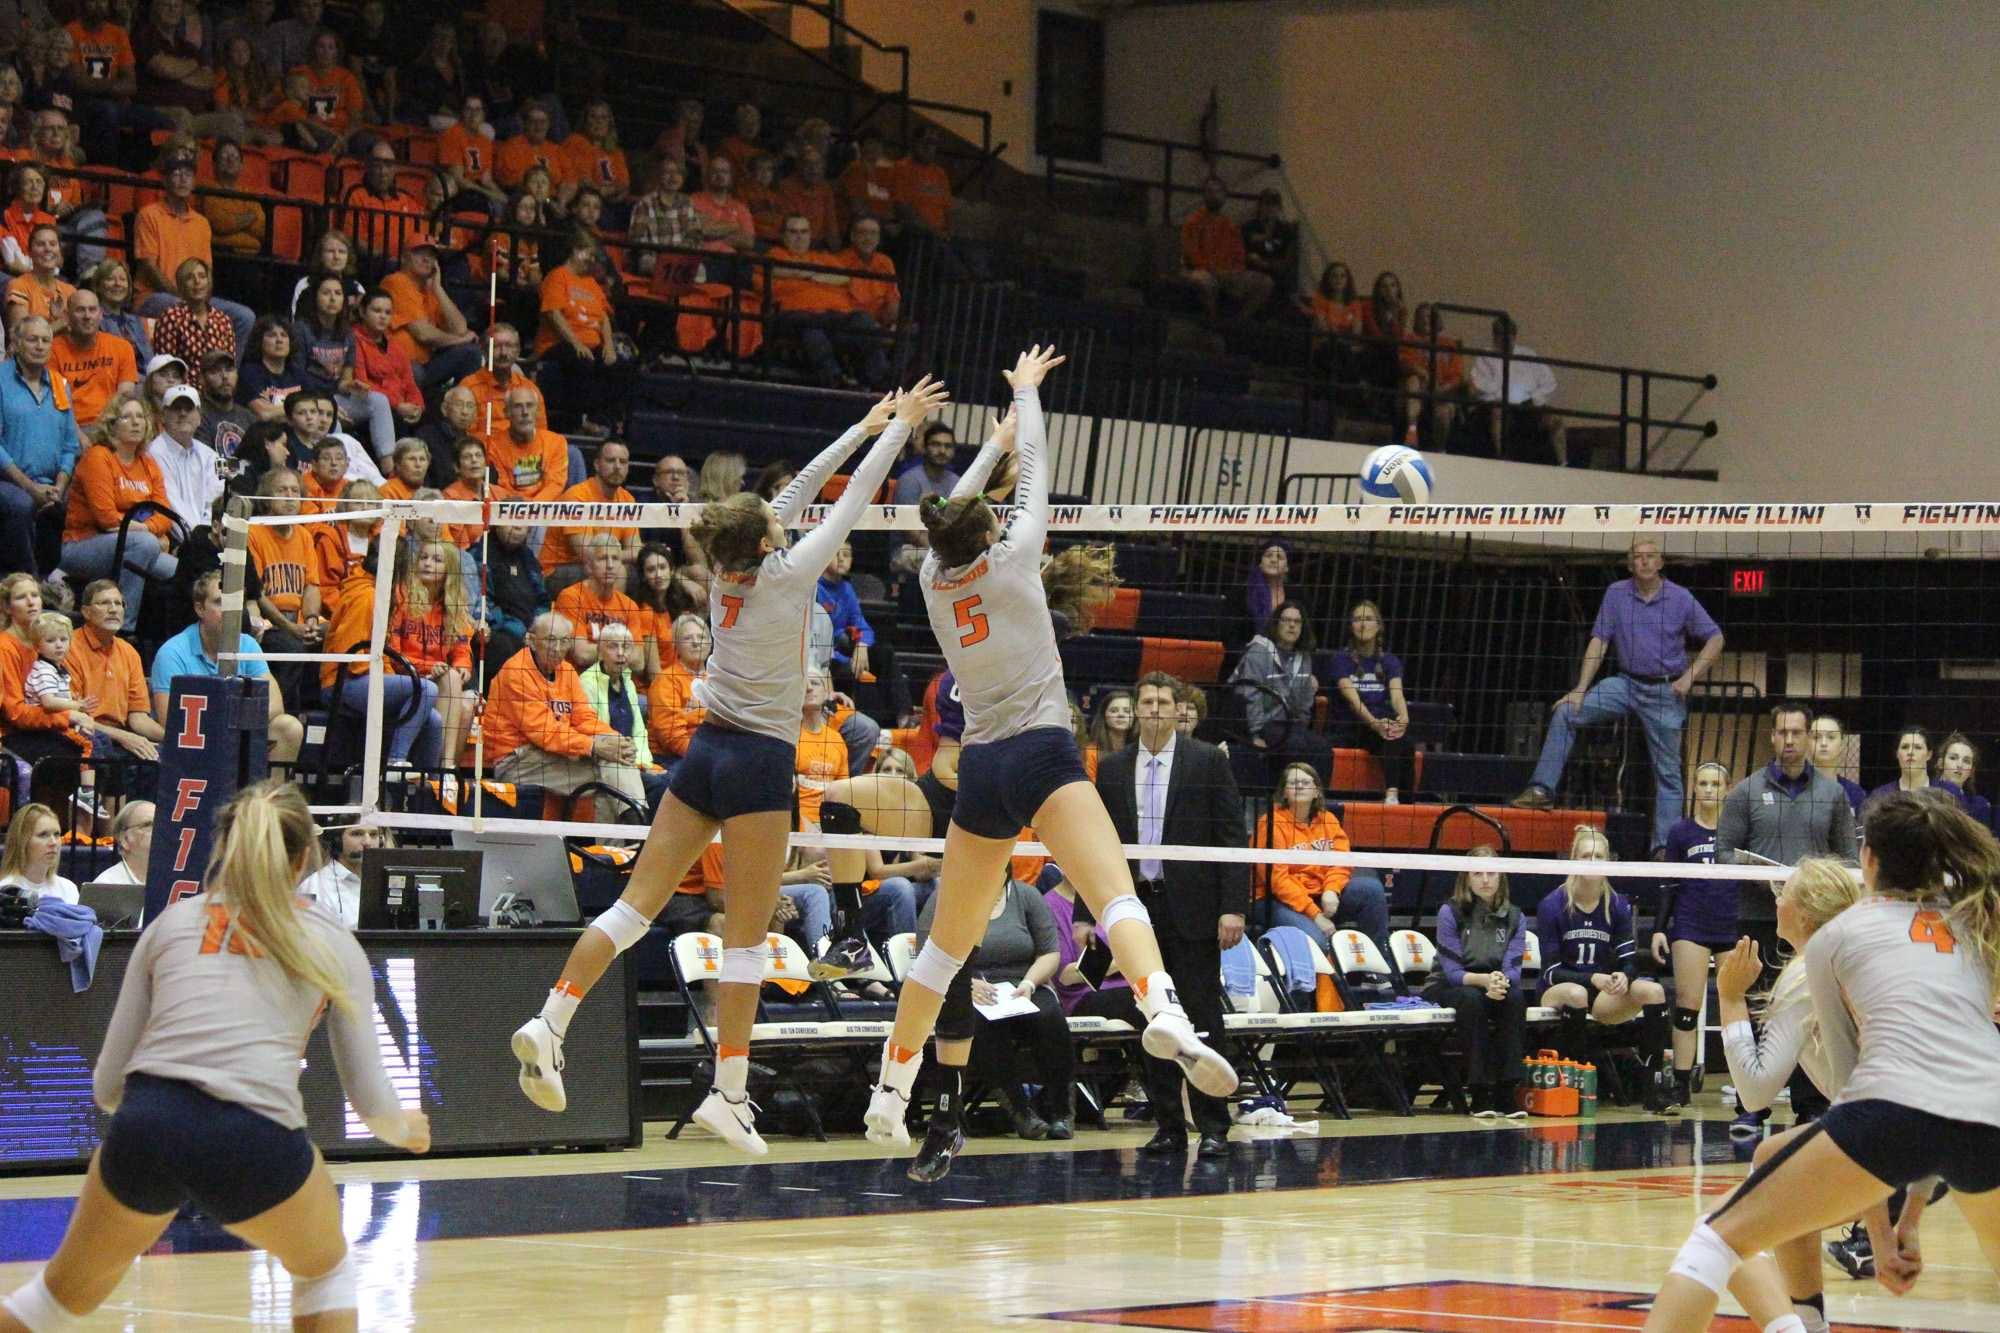 Jacqueline Quade (7) and Ali Bastianelli (5) jump up together to block the spike from Northwestern at Huff Hall on Oct. 15, 2016. Illini beat Northwestern 3-0.